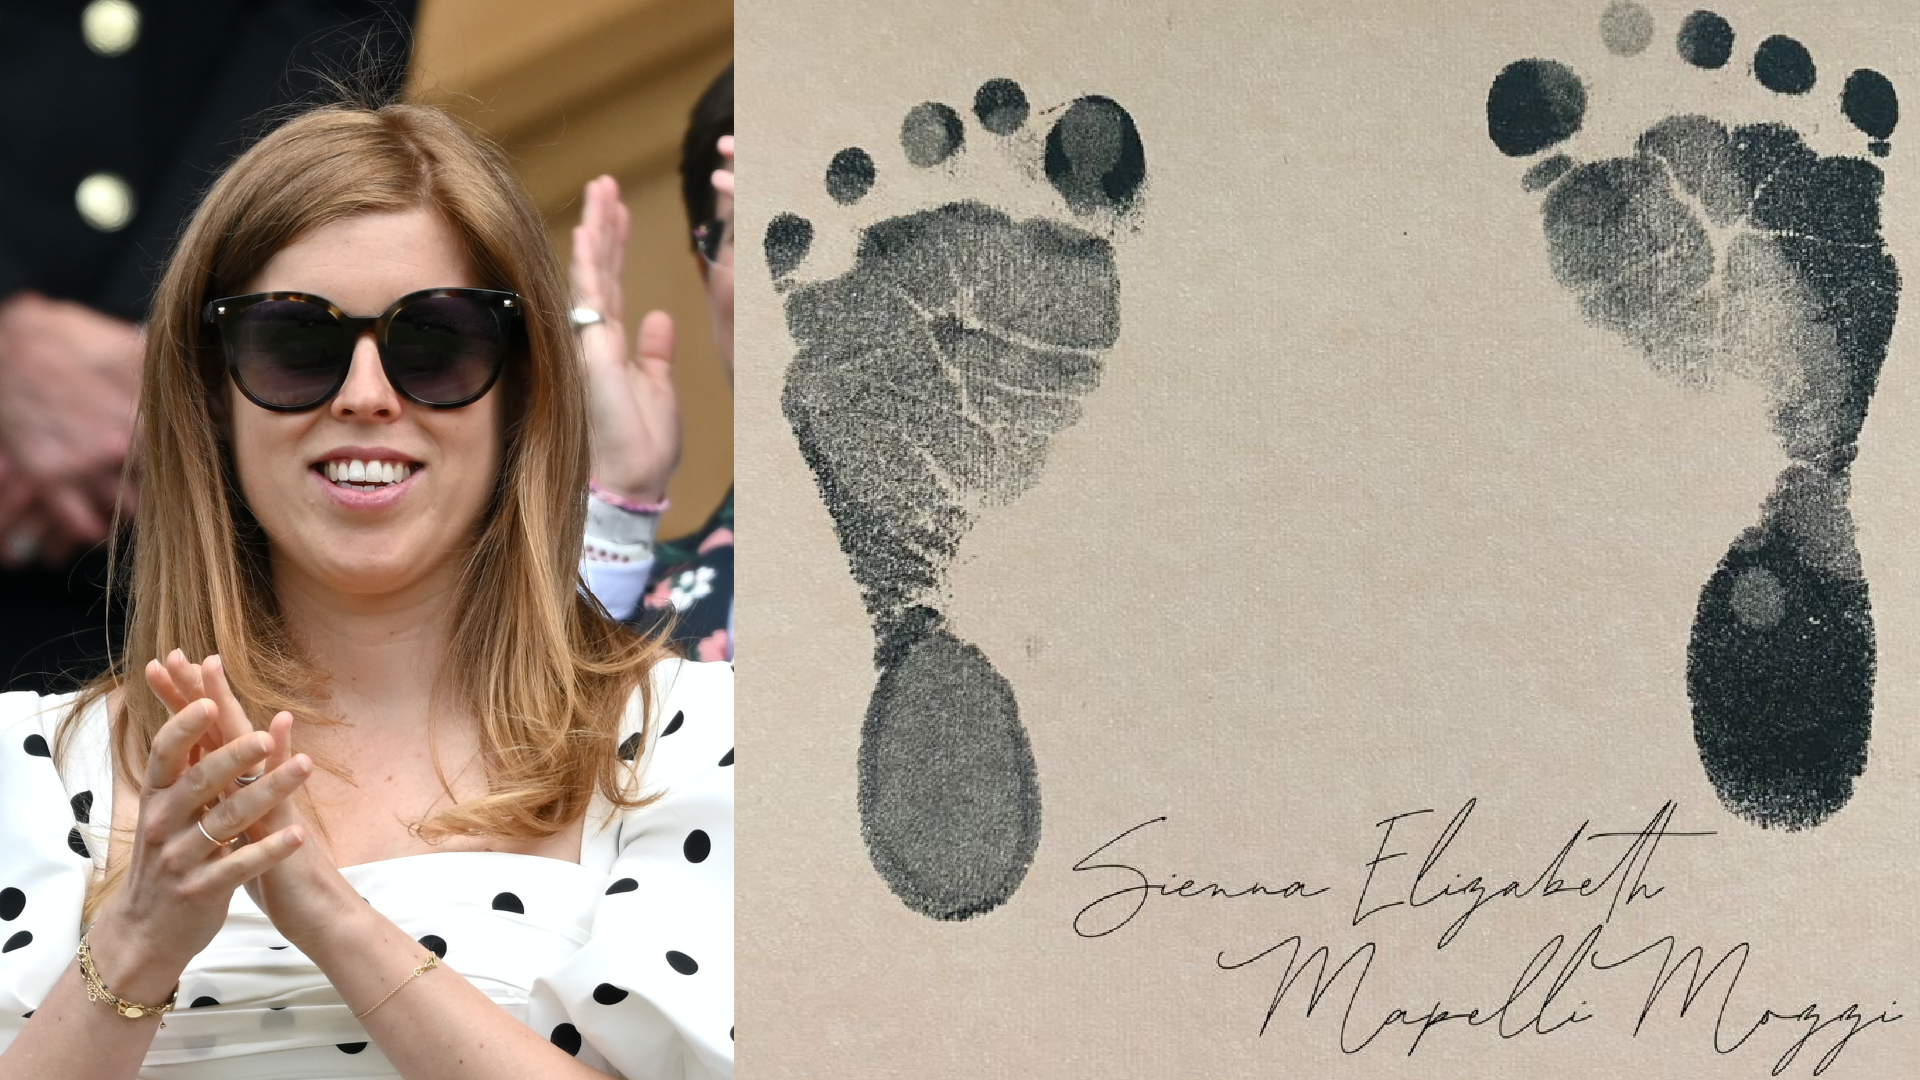 Princess Beatrice and Edoardo name daughter after The Queen: their journey to family bliss